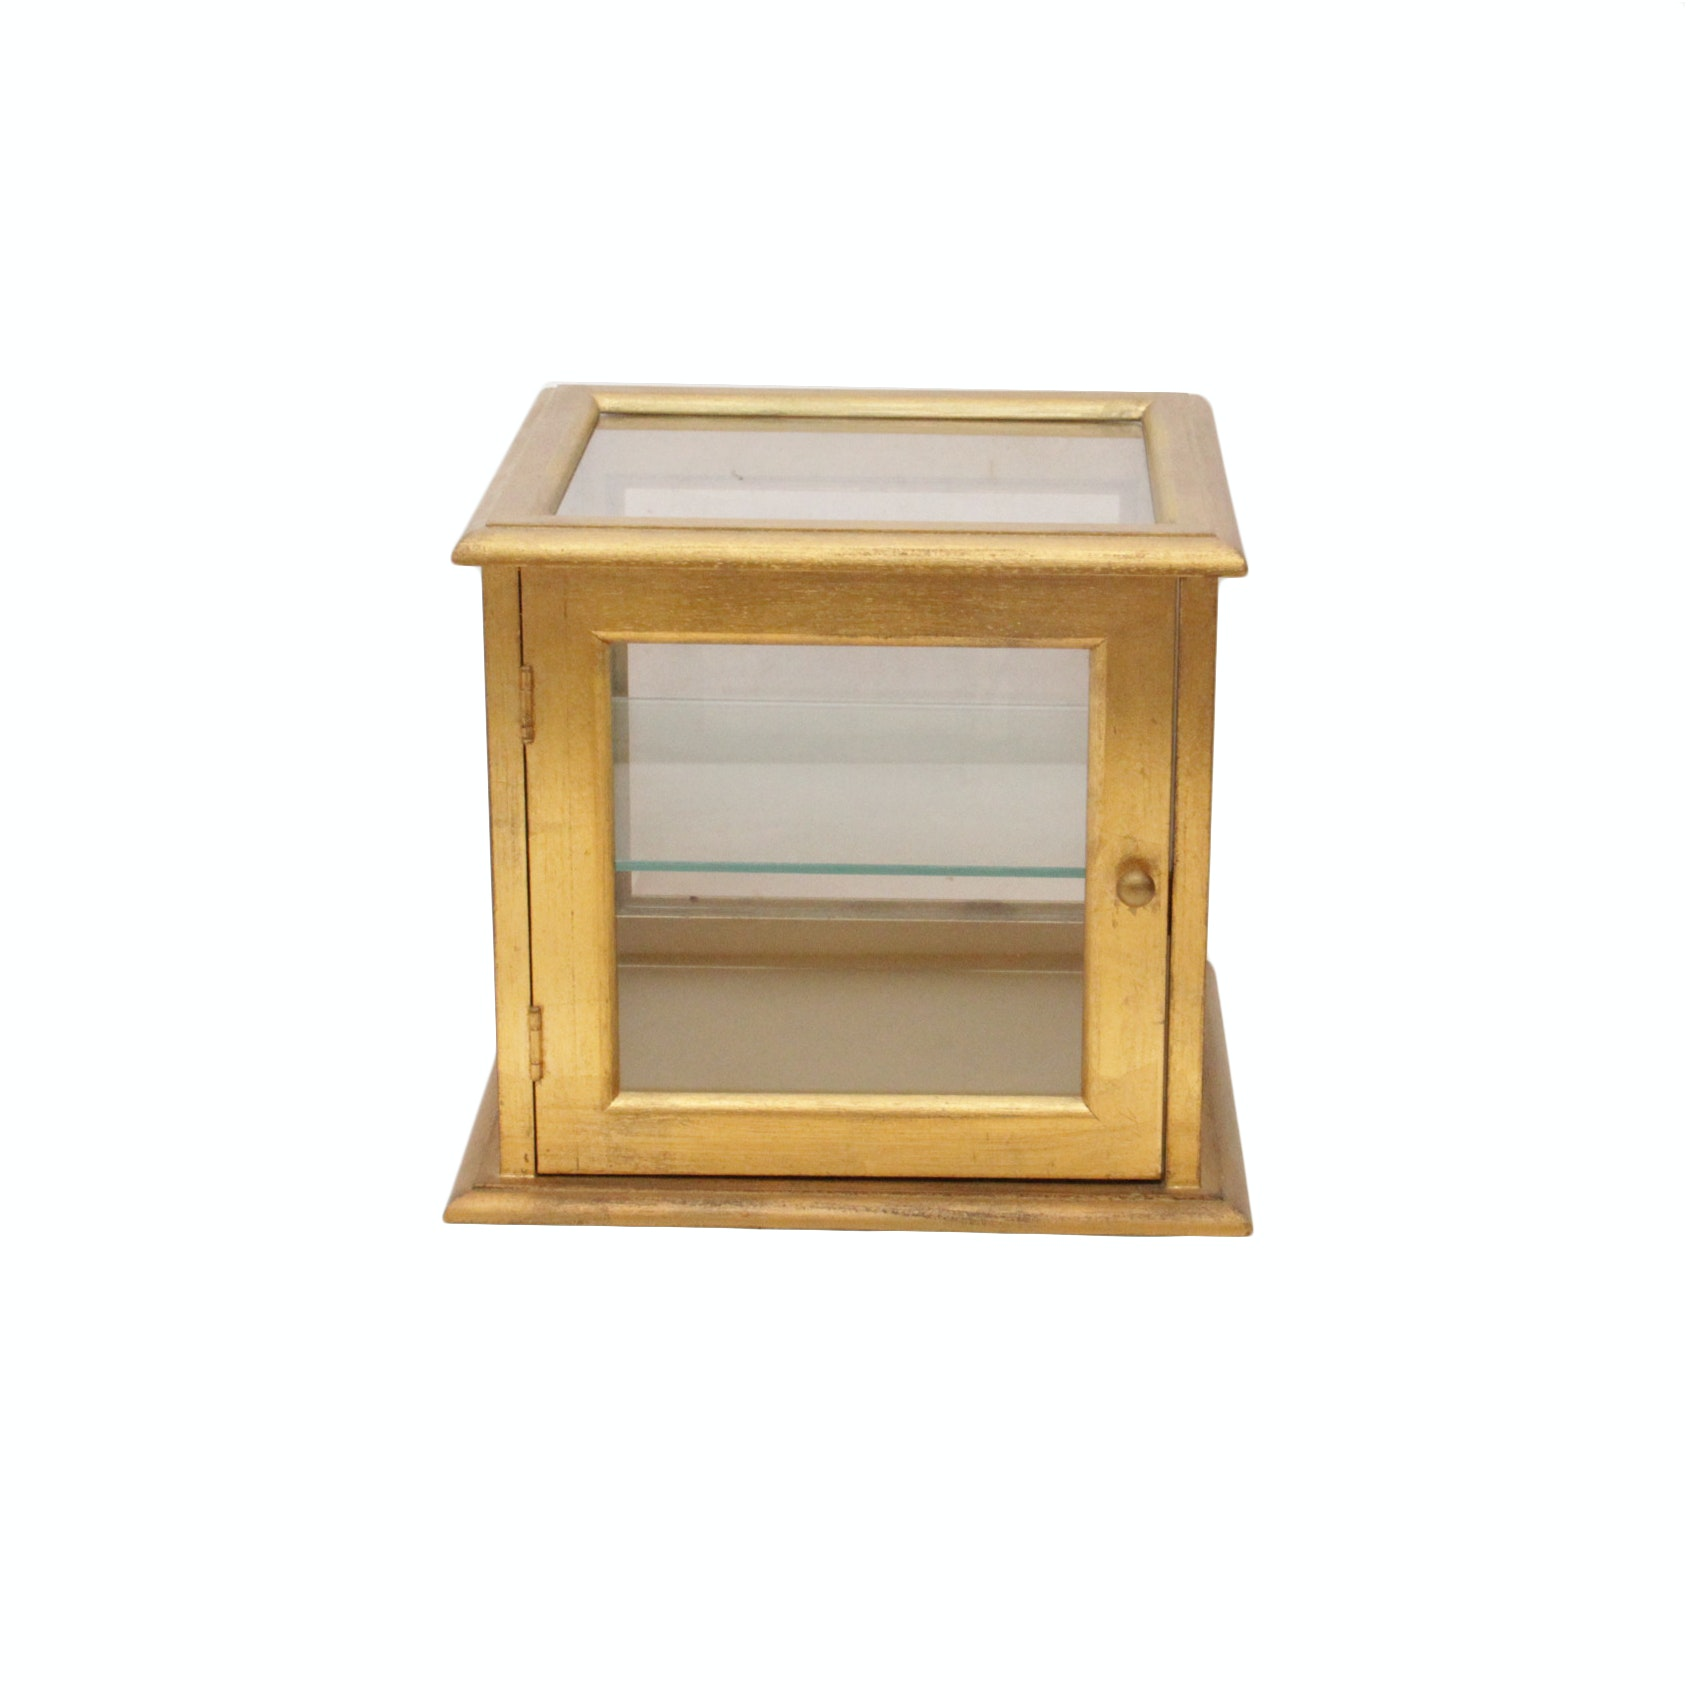 Gold Tone Painted Wooden Display Box